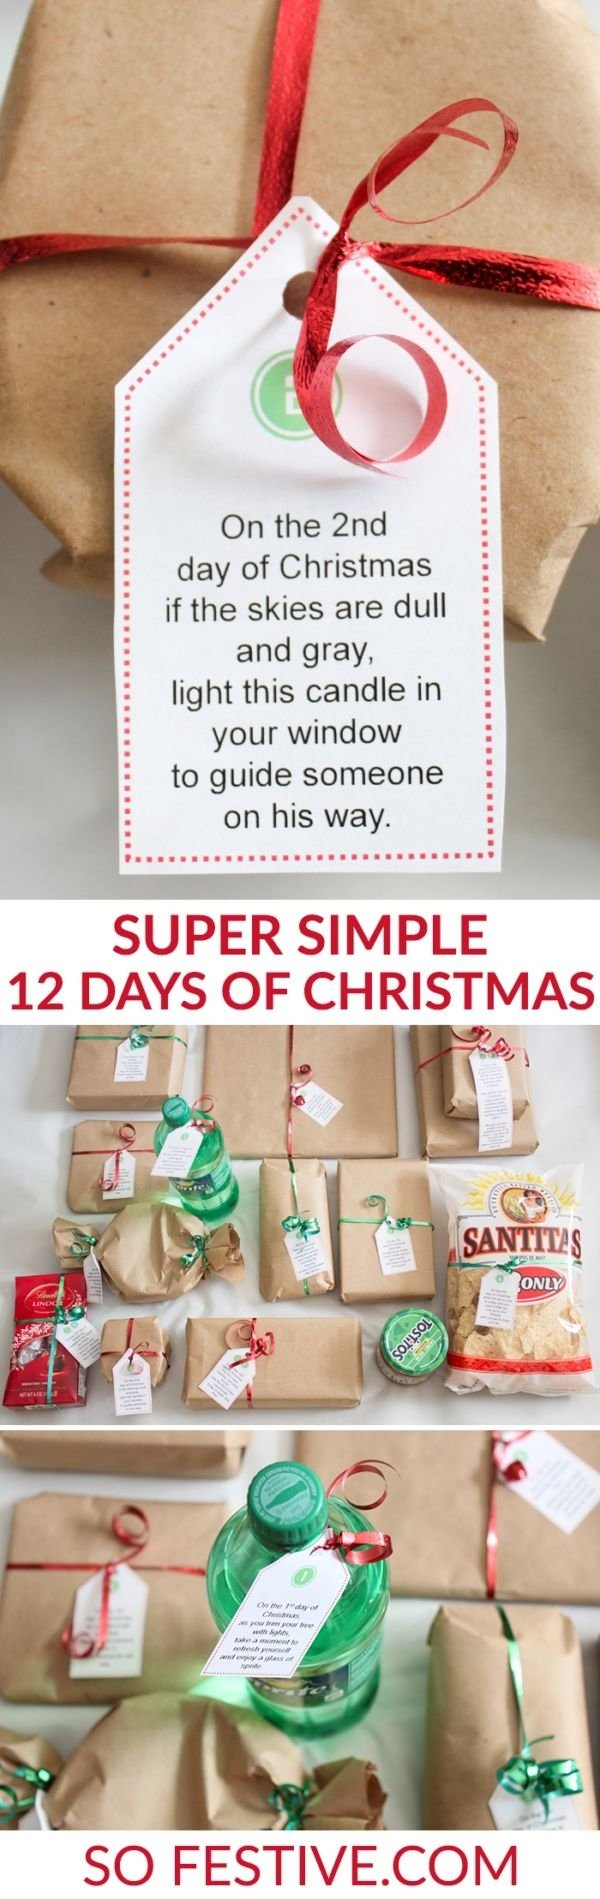 The 12 Days Of Christmas Gift Ideas ✓ The Best Christmas Gifts